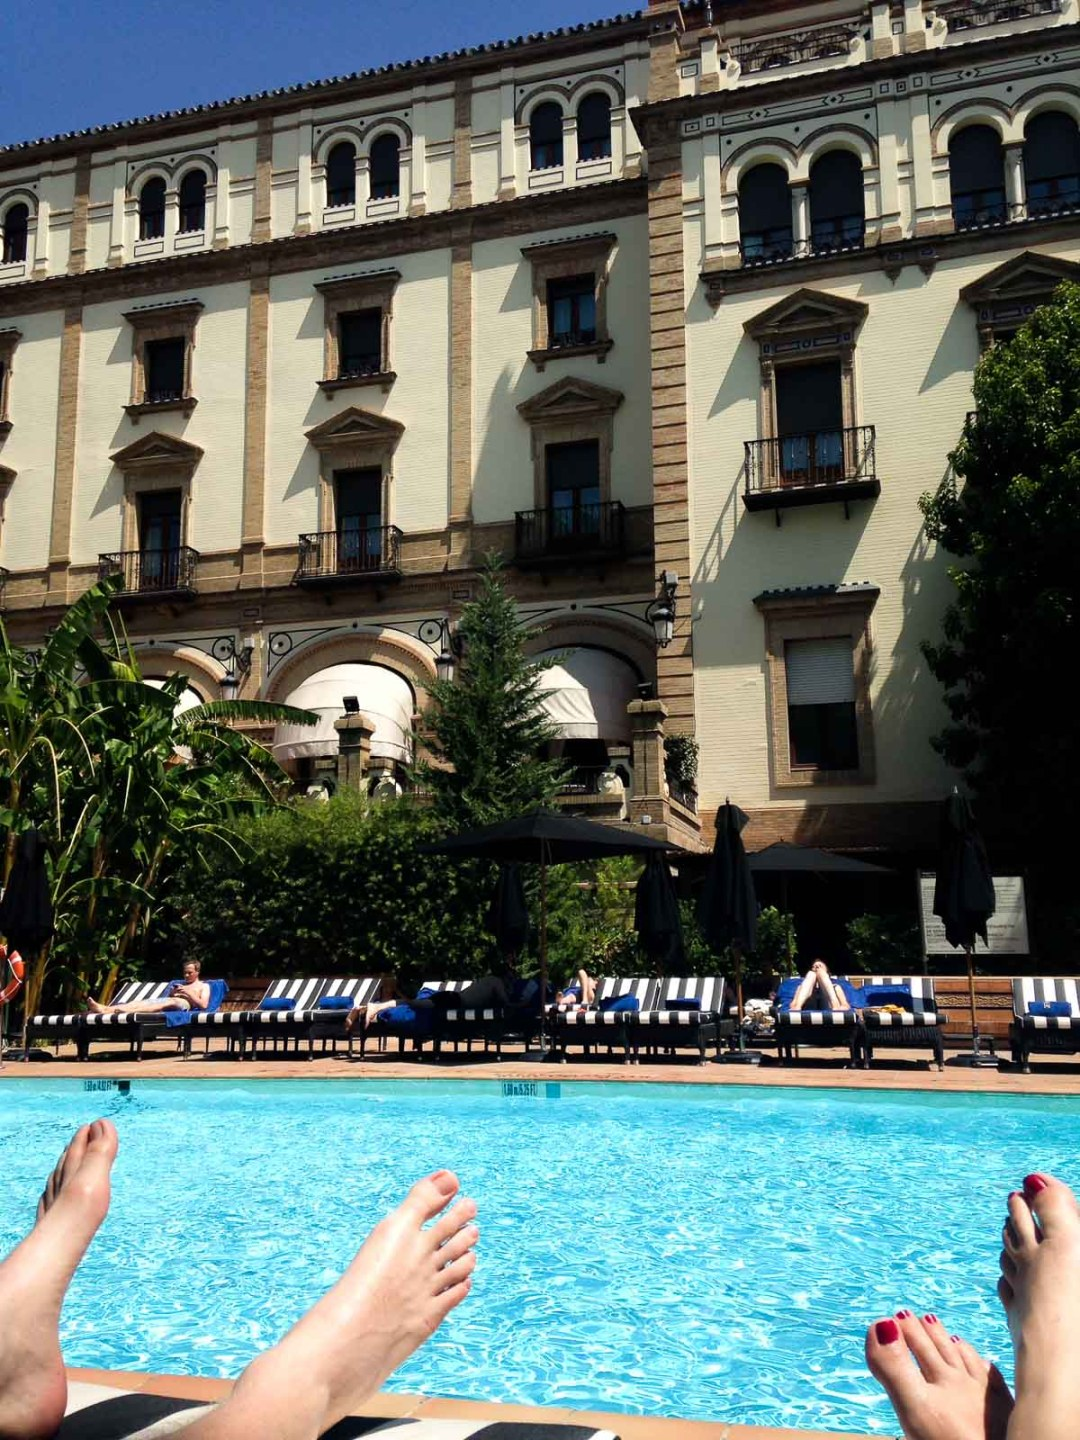 Poolside at Hotel Alfonso XII